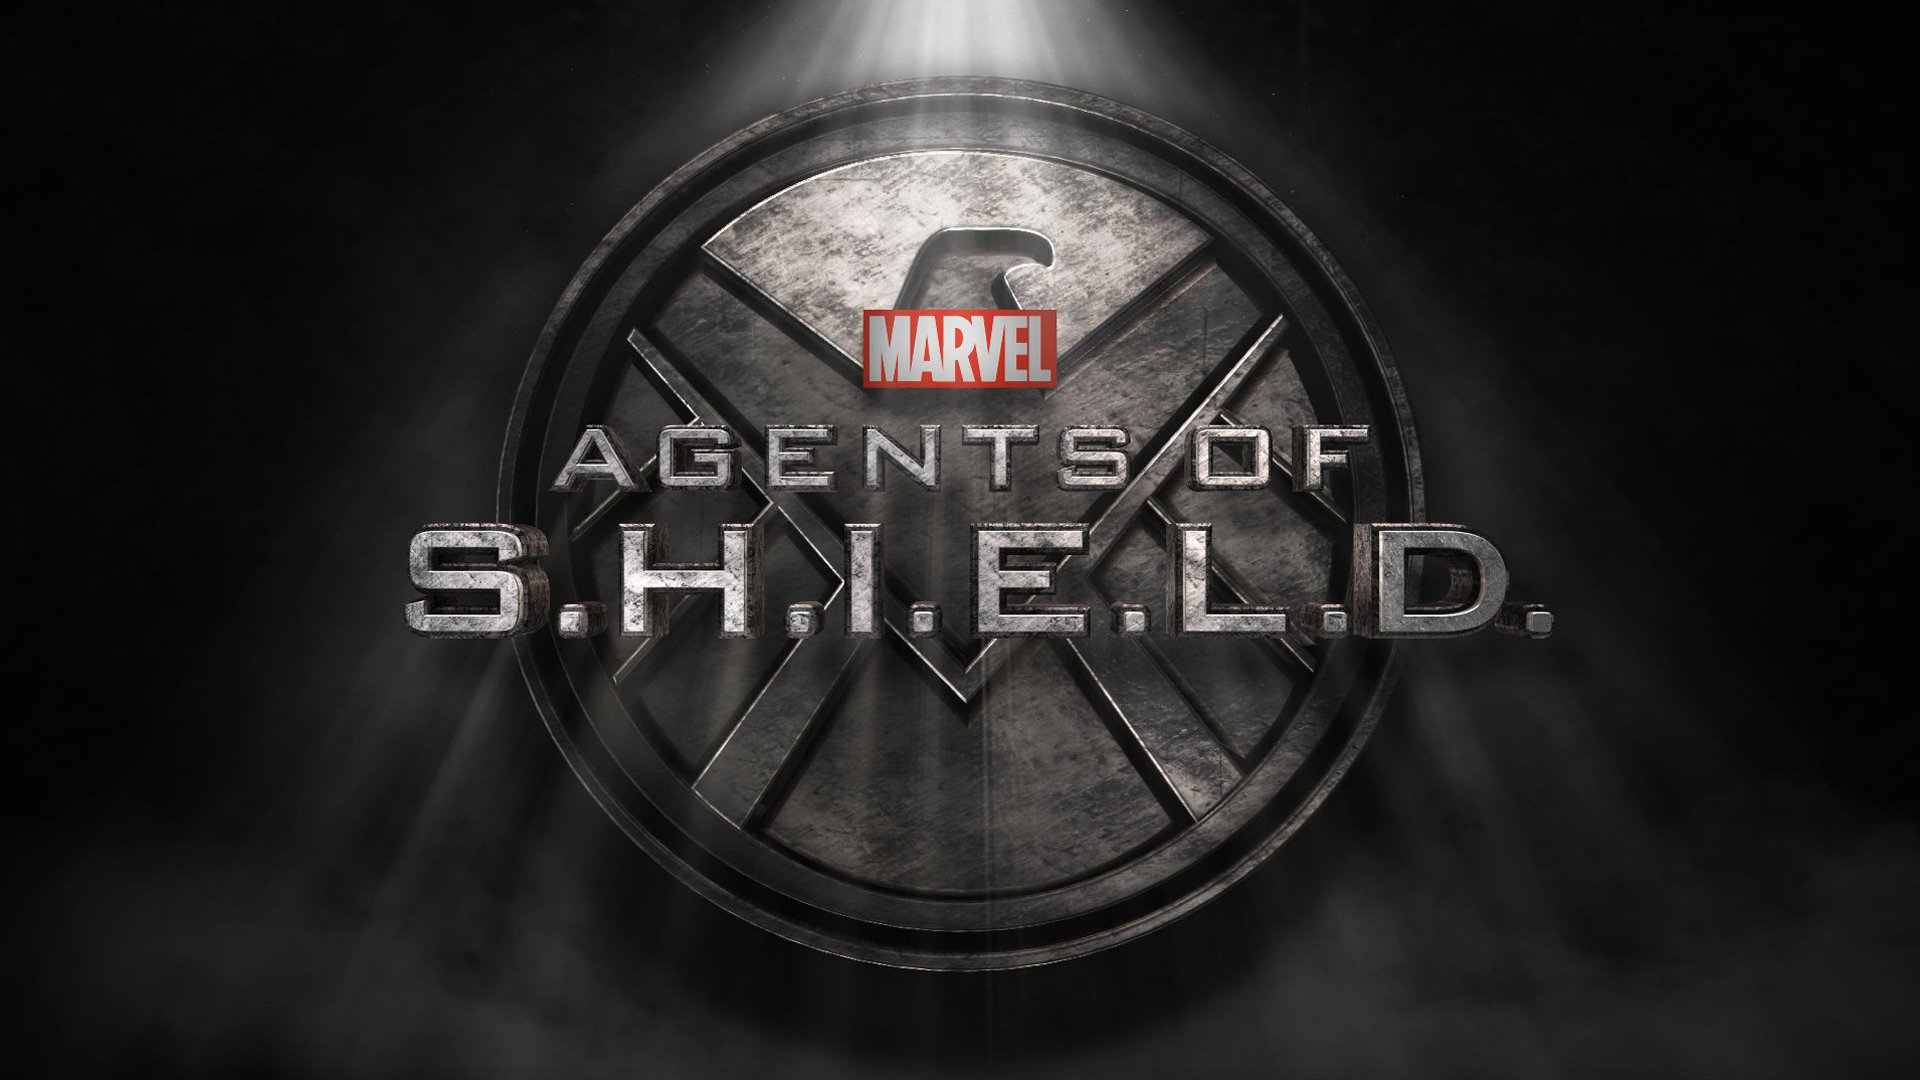 Agents of SHIELD Season 5 Already Has A Release Date